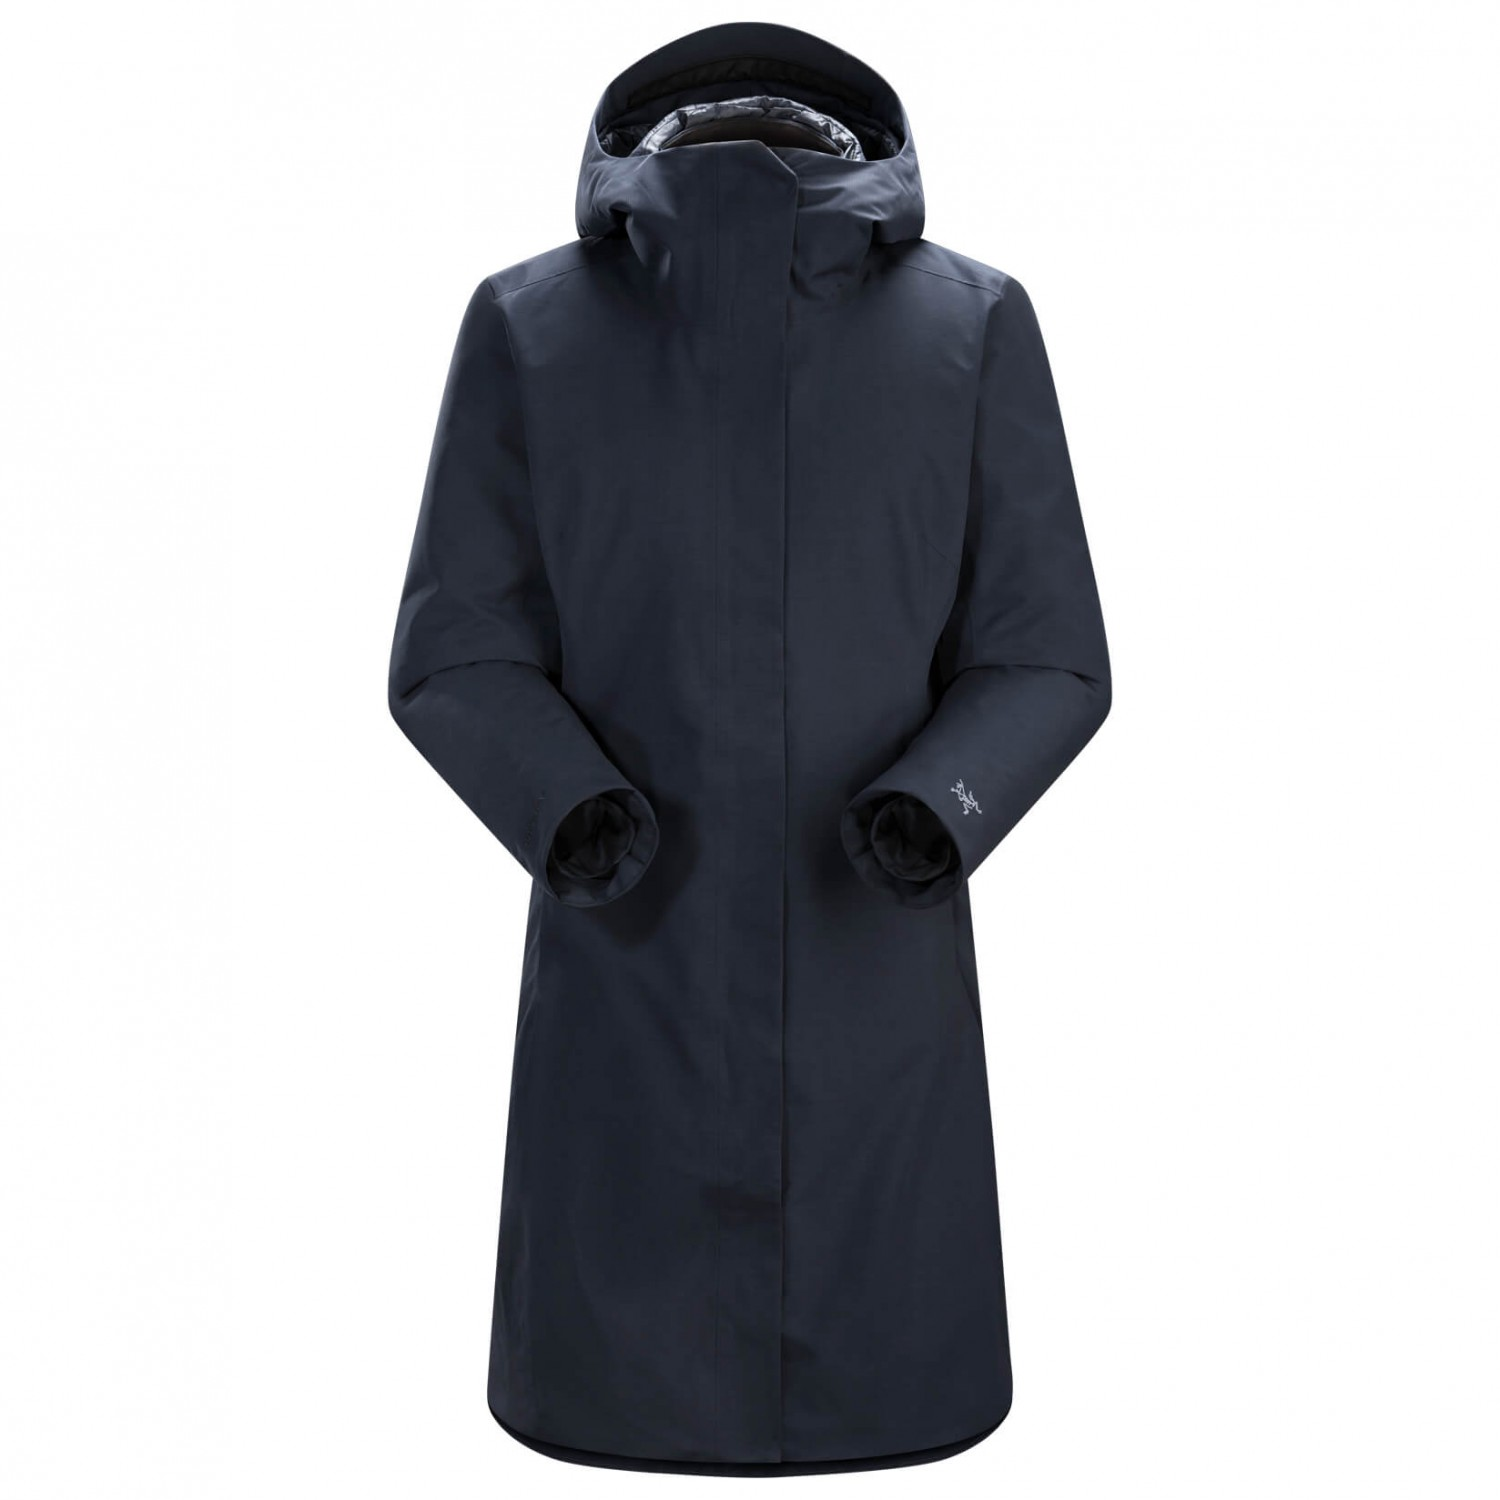 50963d6cdc1 Arc'teryx Patera Parka - Coat Women's | Free UK Delivery ...